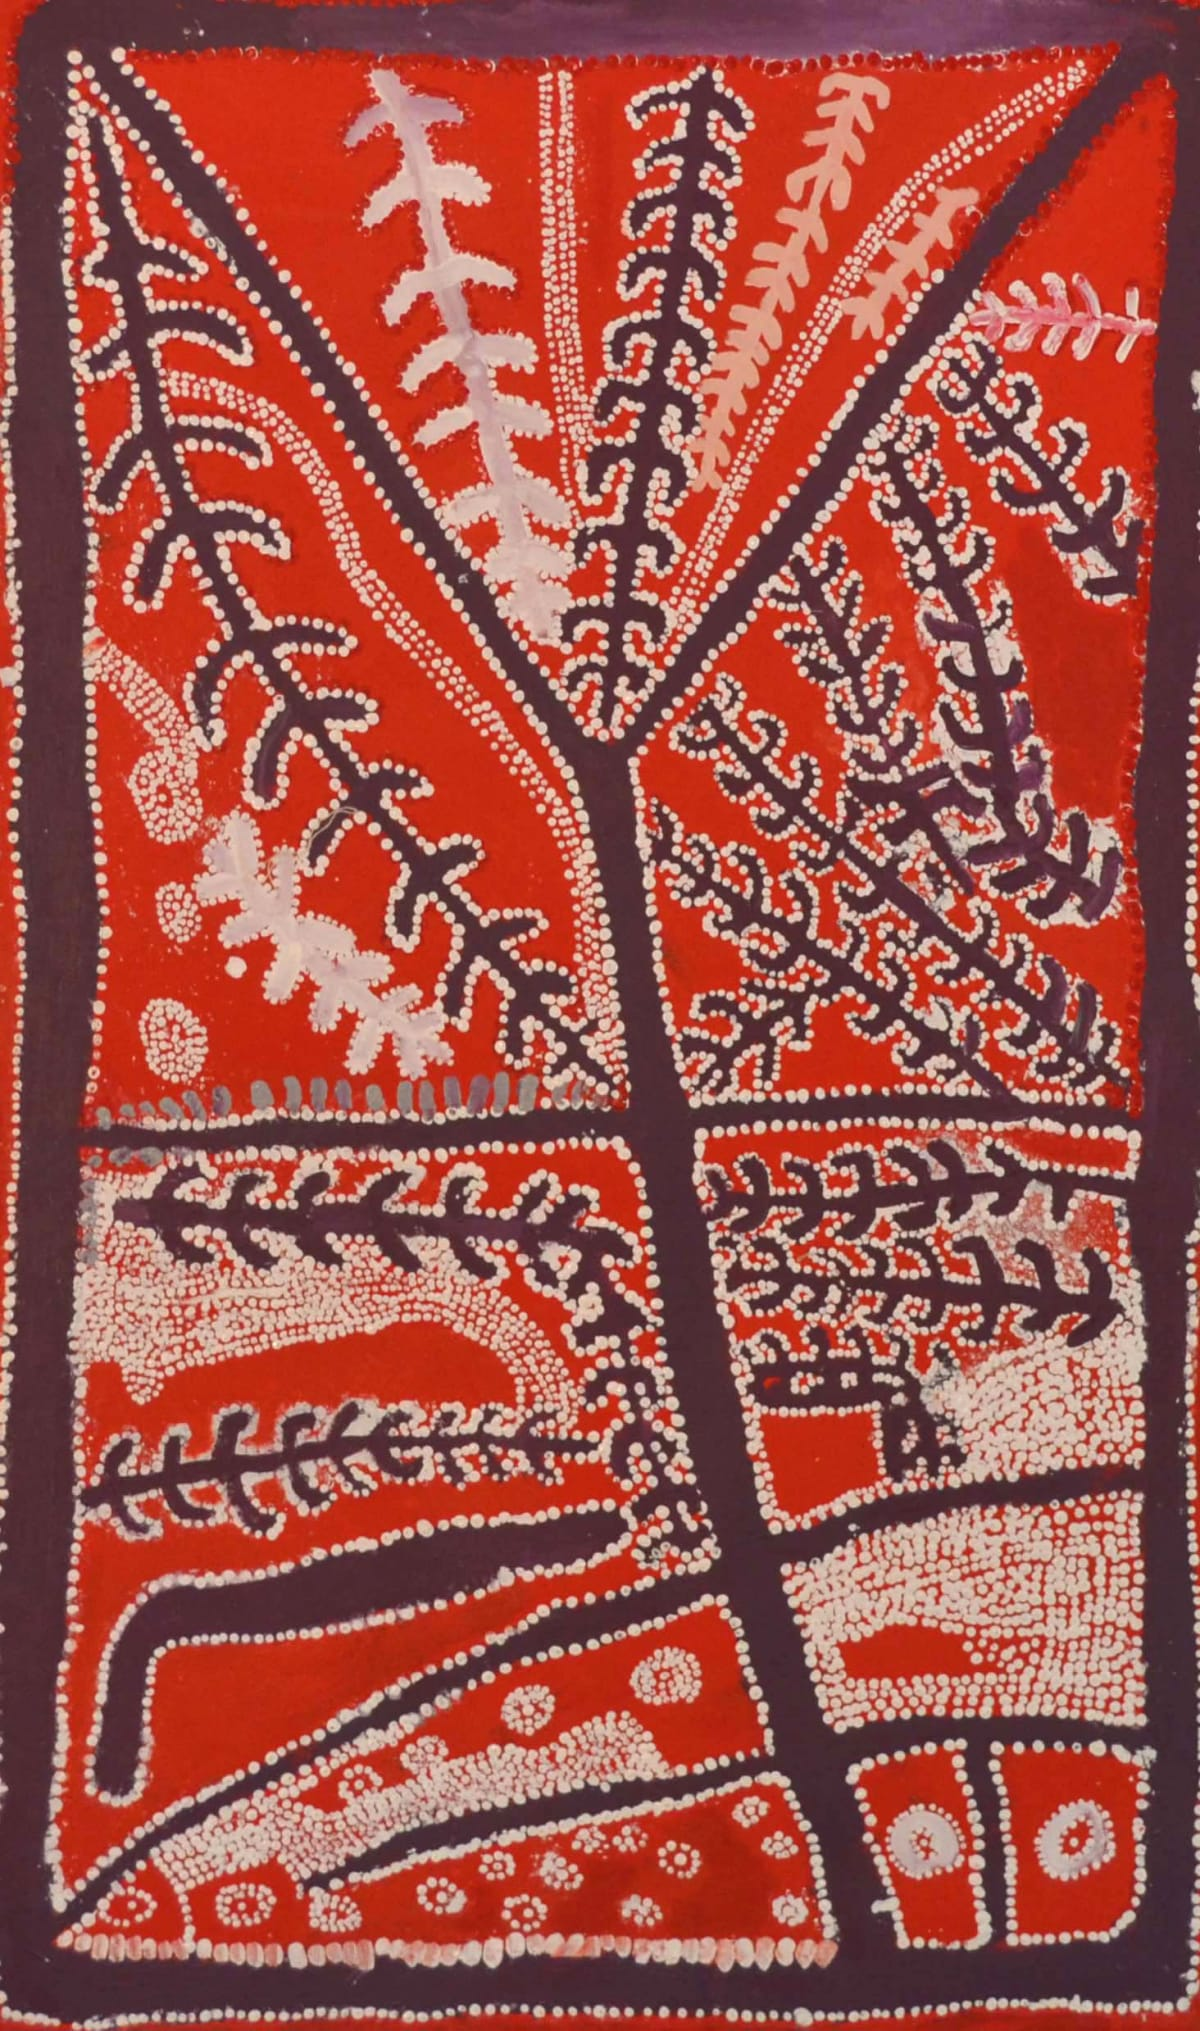 Whiskey Tjukangku Arrernte Country acrylic on canvas 101 x 61 cm